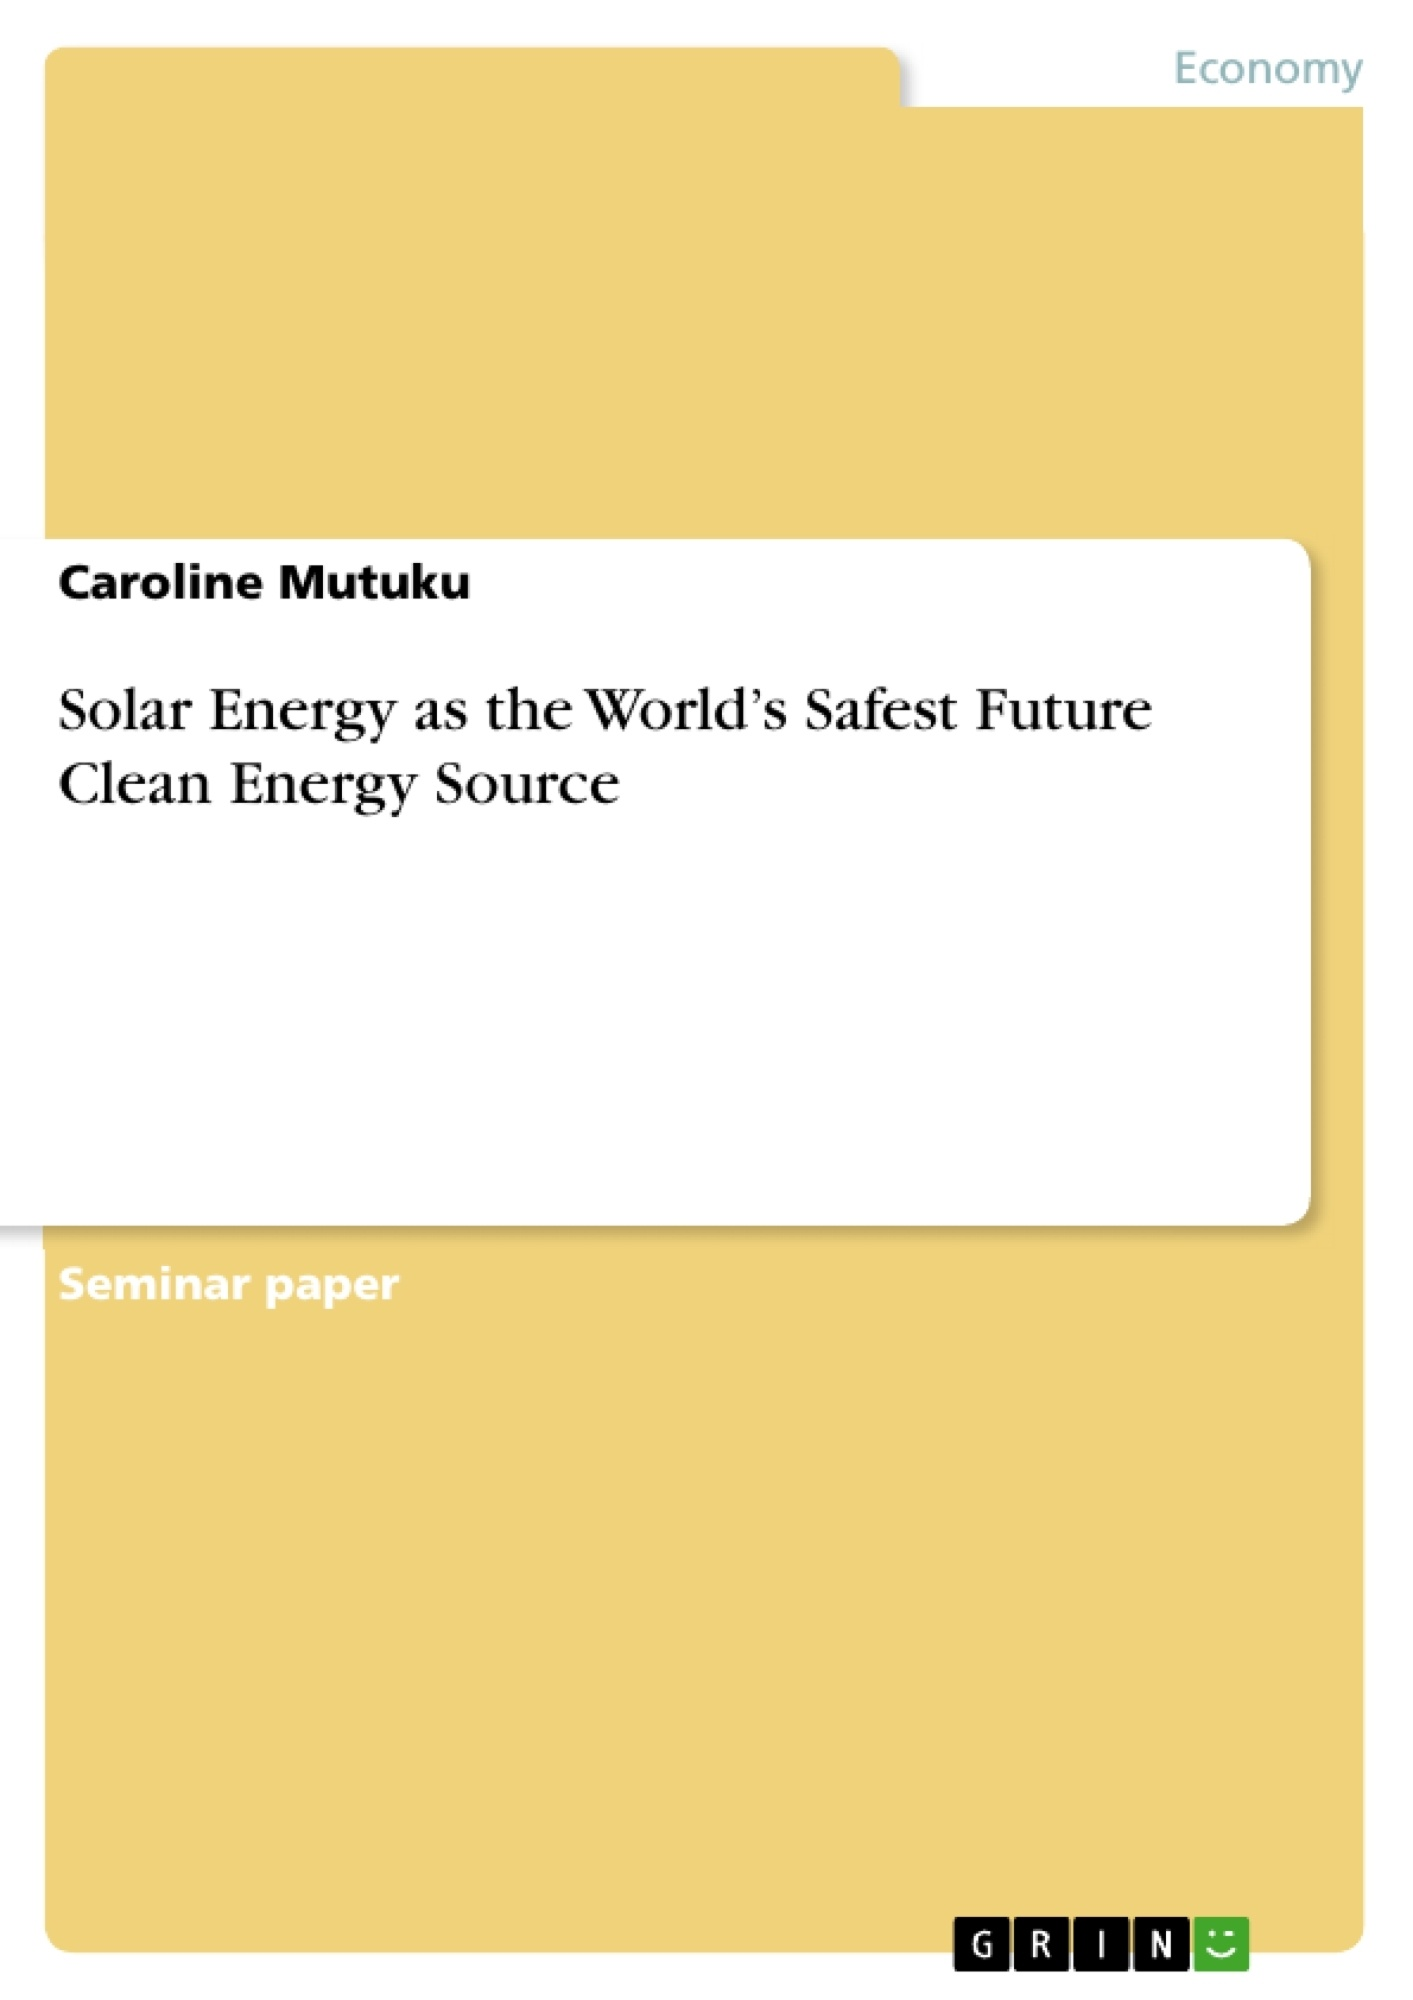 Title: Solar Energy as the World's Safest Future Clean Energy Source